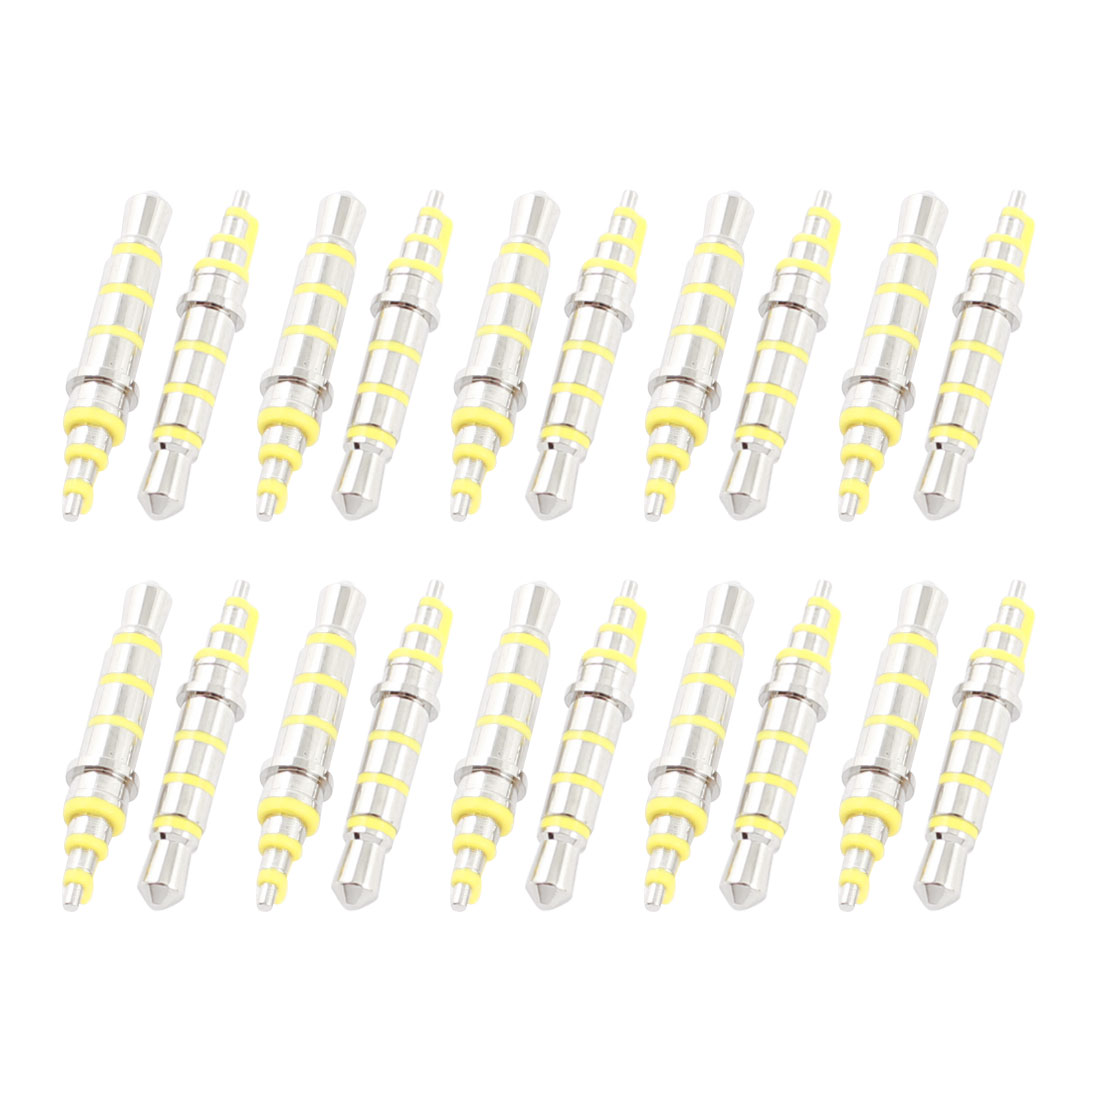 20Pcs 3.5mm Male 4 Pole Earphone Headphone Audio Jack Silver Tone